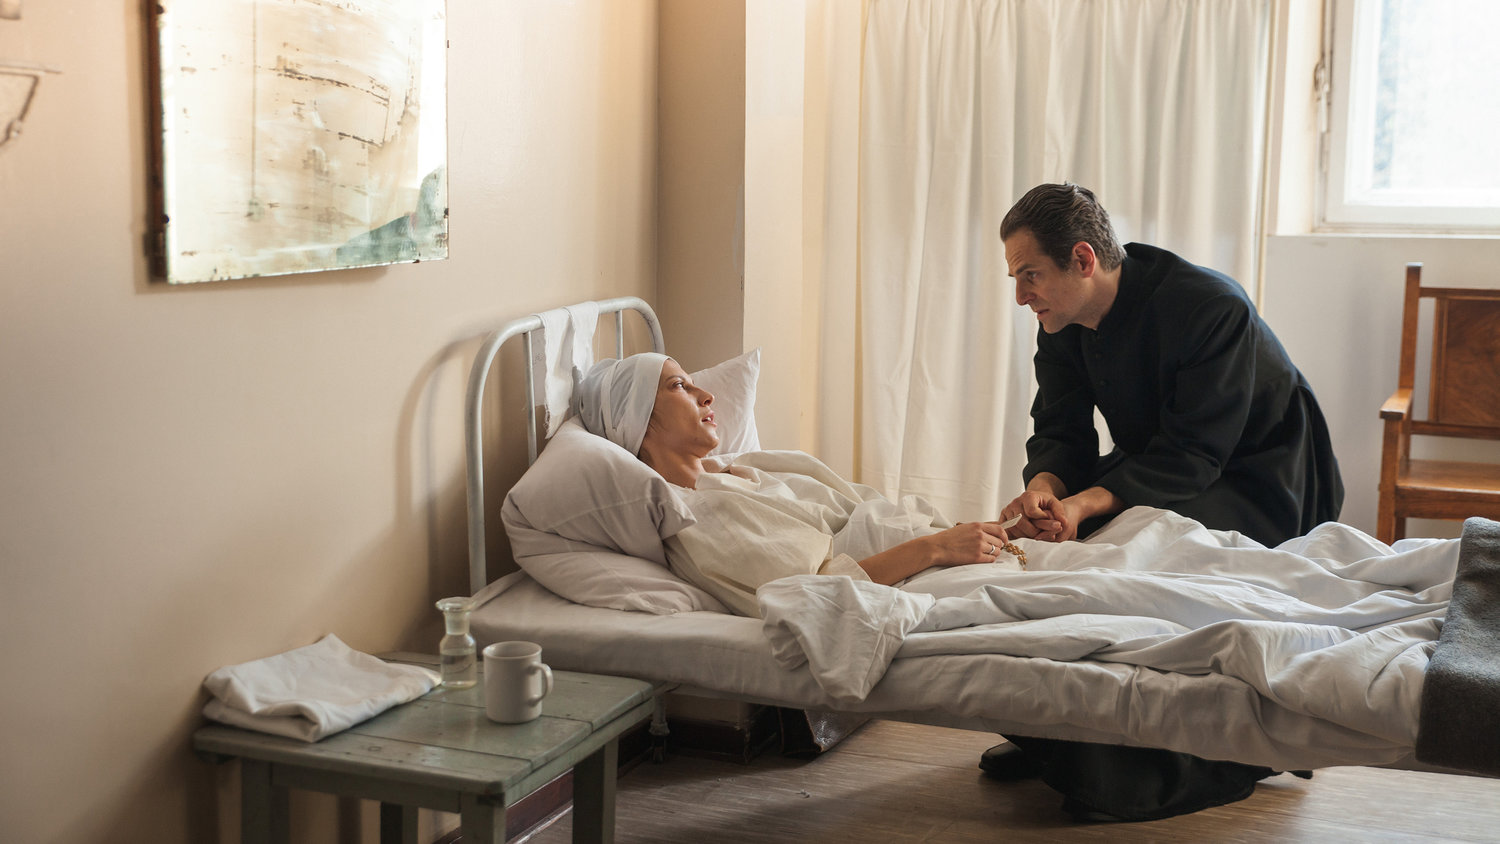 "Kamila Kaminska and Maciej Malysa star in a scene from the movie ""Love and Mercy: Faustina."" The new film on the life of St. Faustina Kowalska, the Polish nun whose visions of Jesus led to the Divine Mercy devotion, will have a one-night-only showing Oct. 28, 2019, at about 700 screens across the United States."